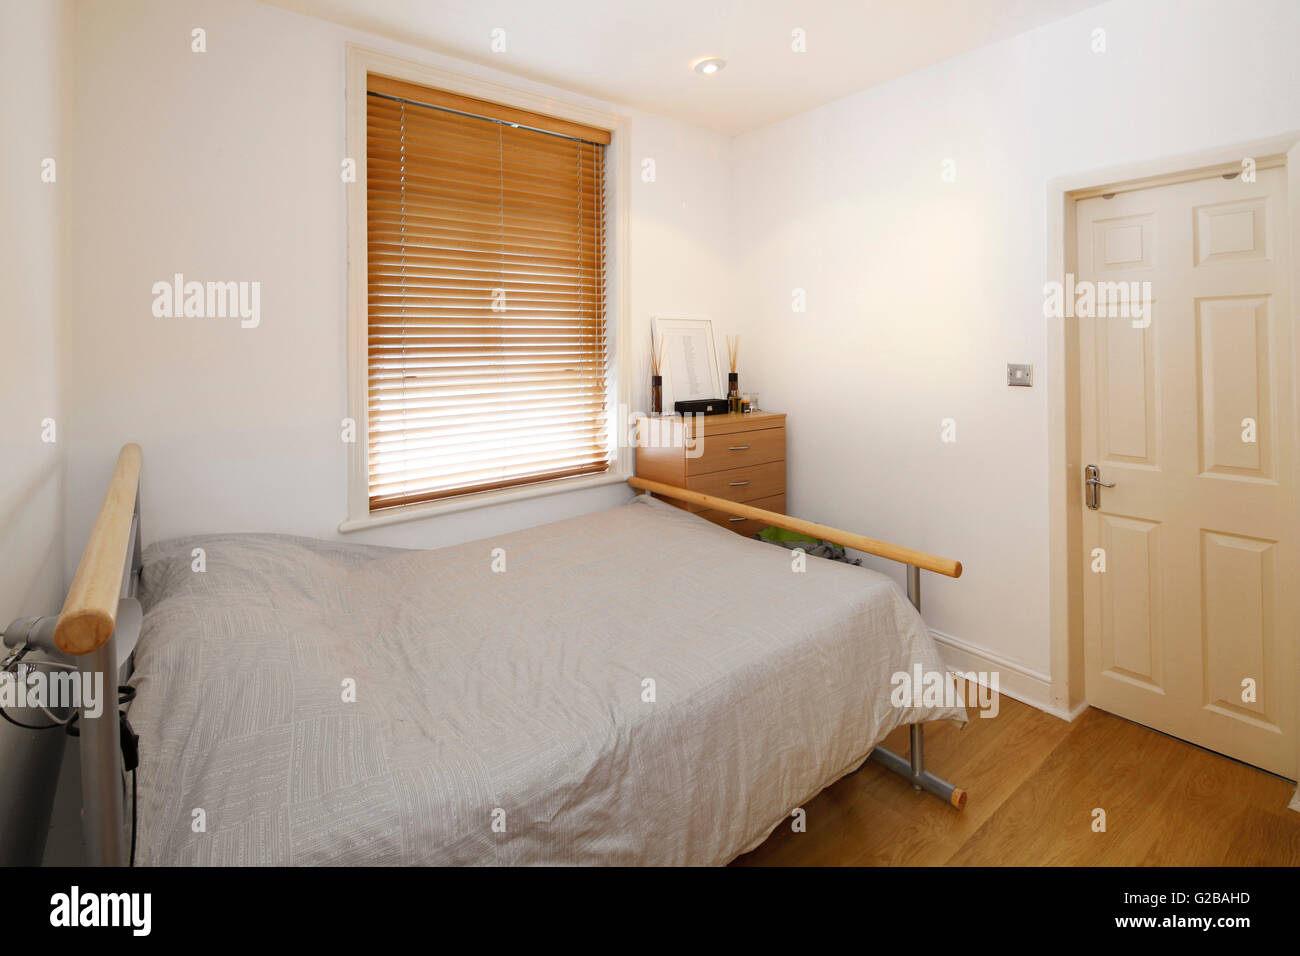 Molyneux House, Marble Arch. Small bedroom with minimal furniture and neutral tones. - Stock Image